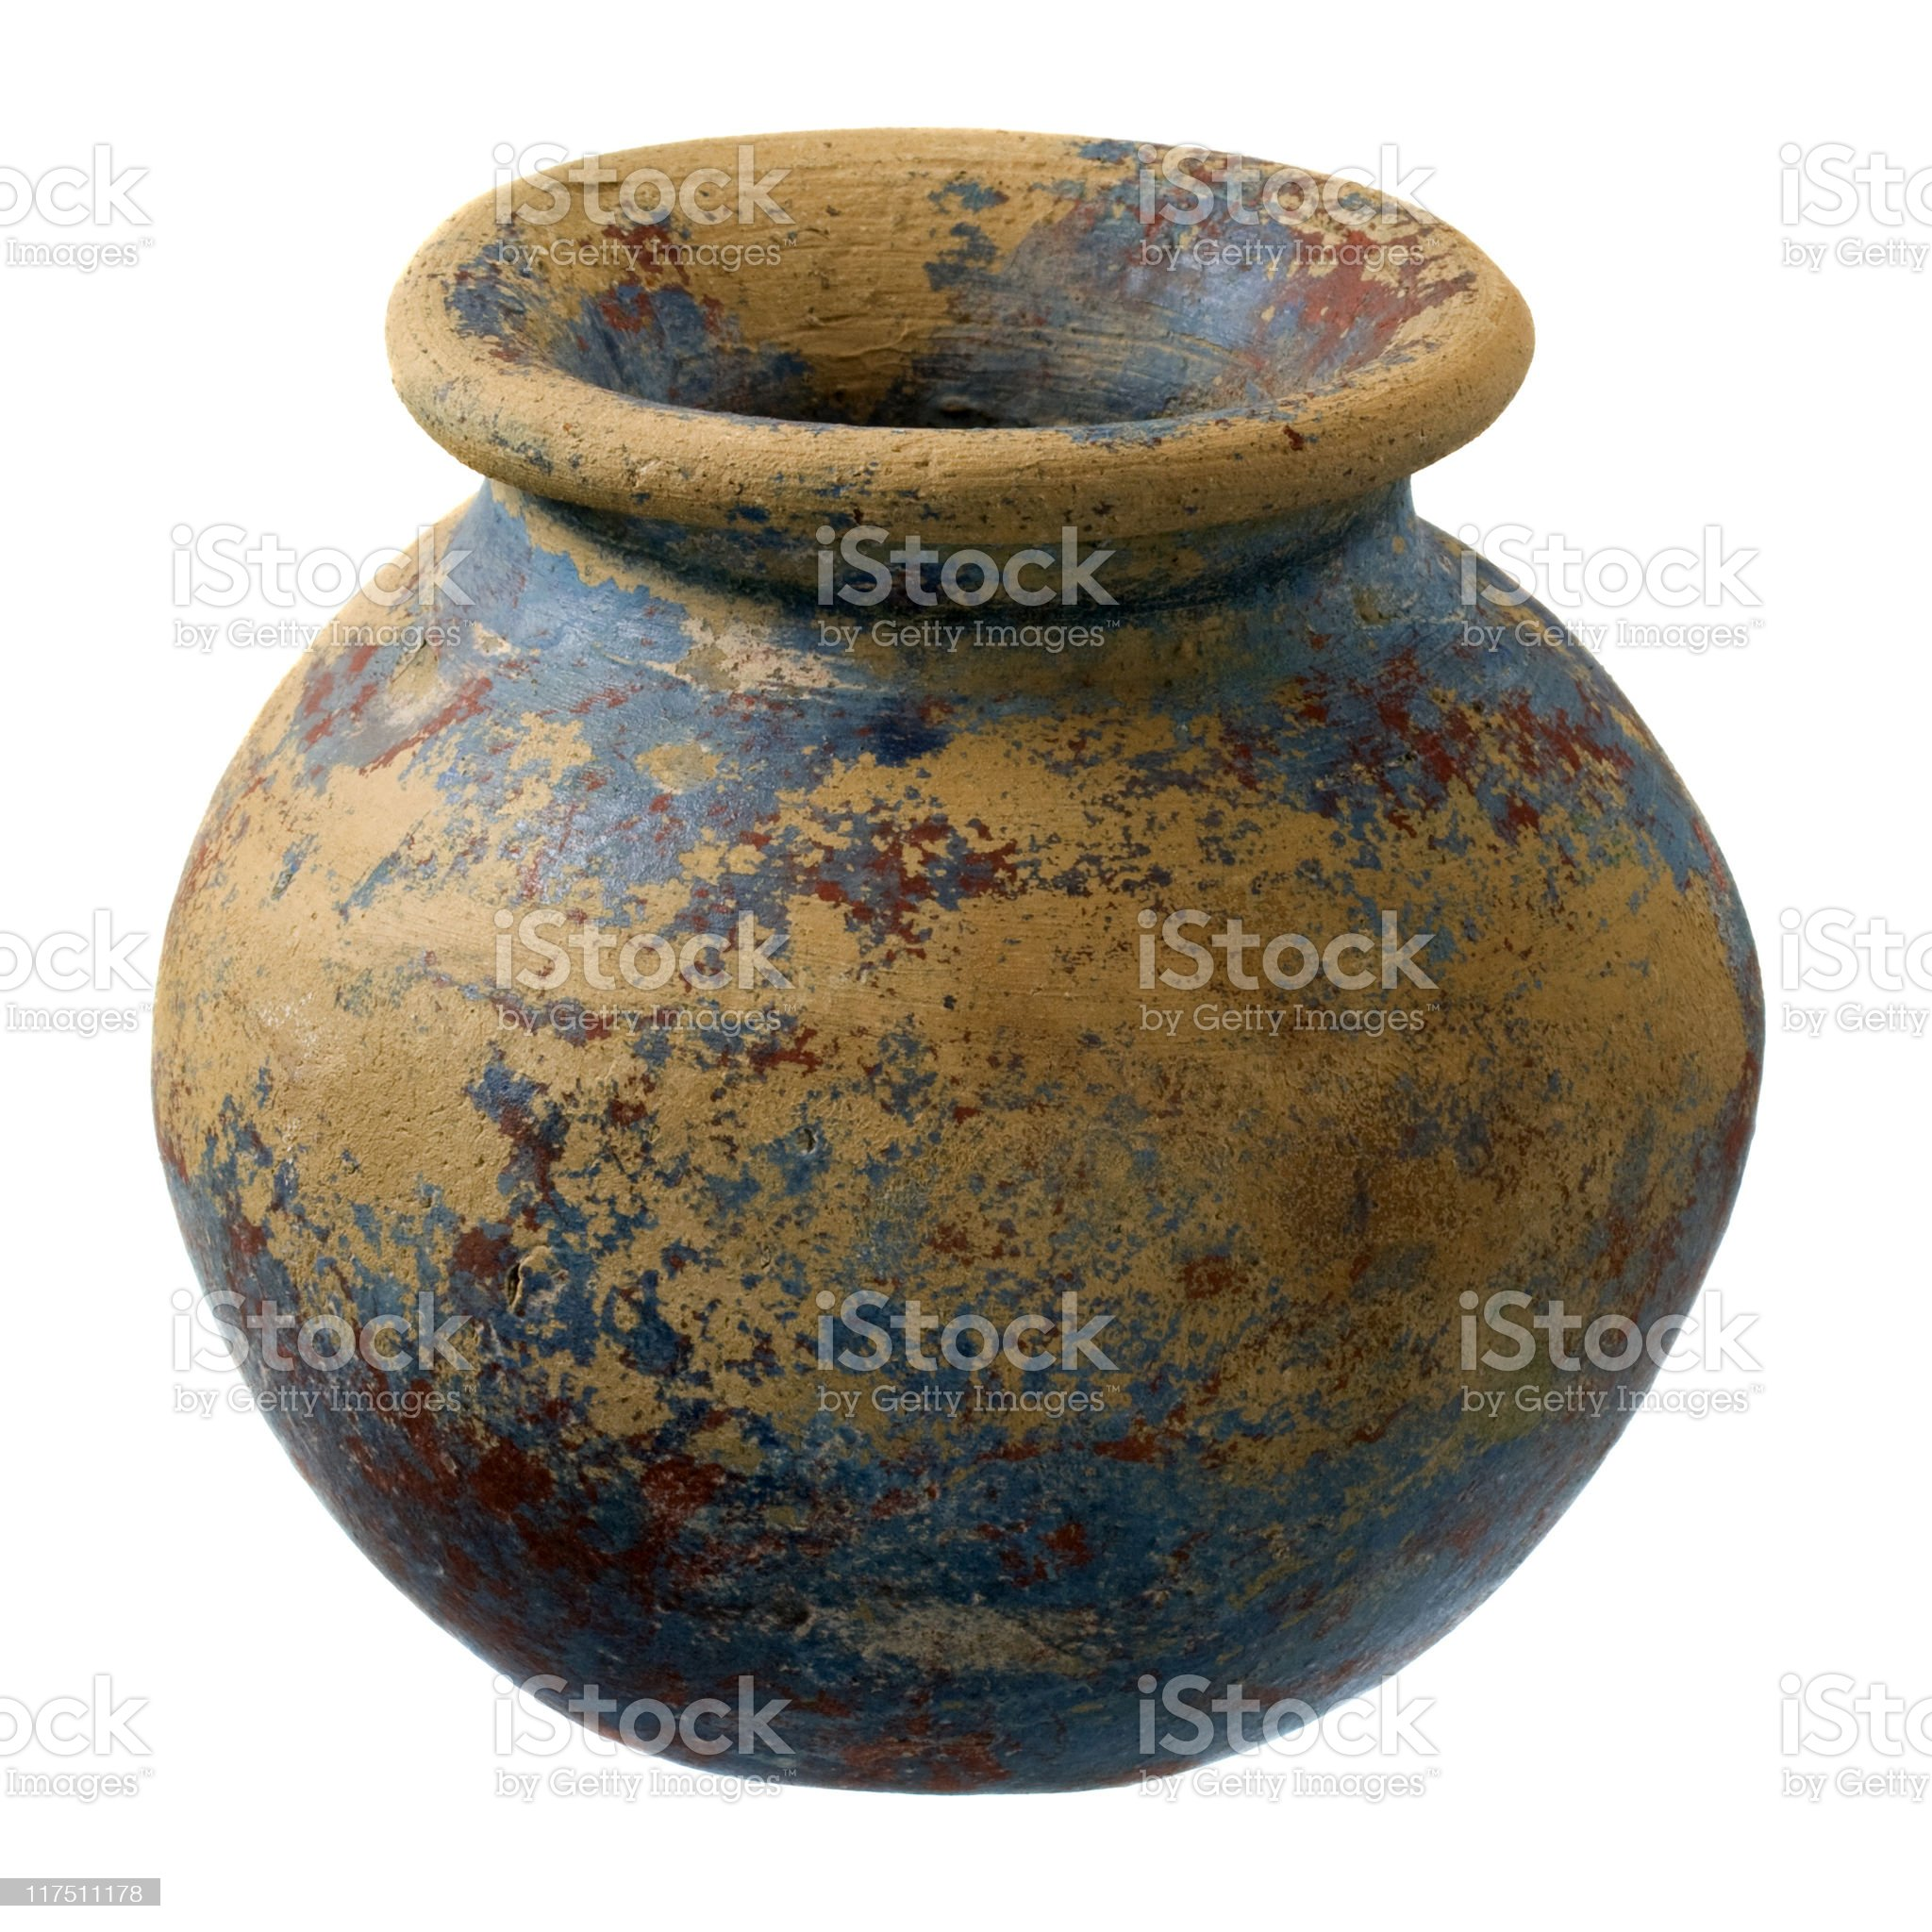 small clay plant pot with rough finish royalty-free stock photo